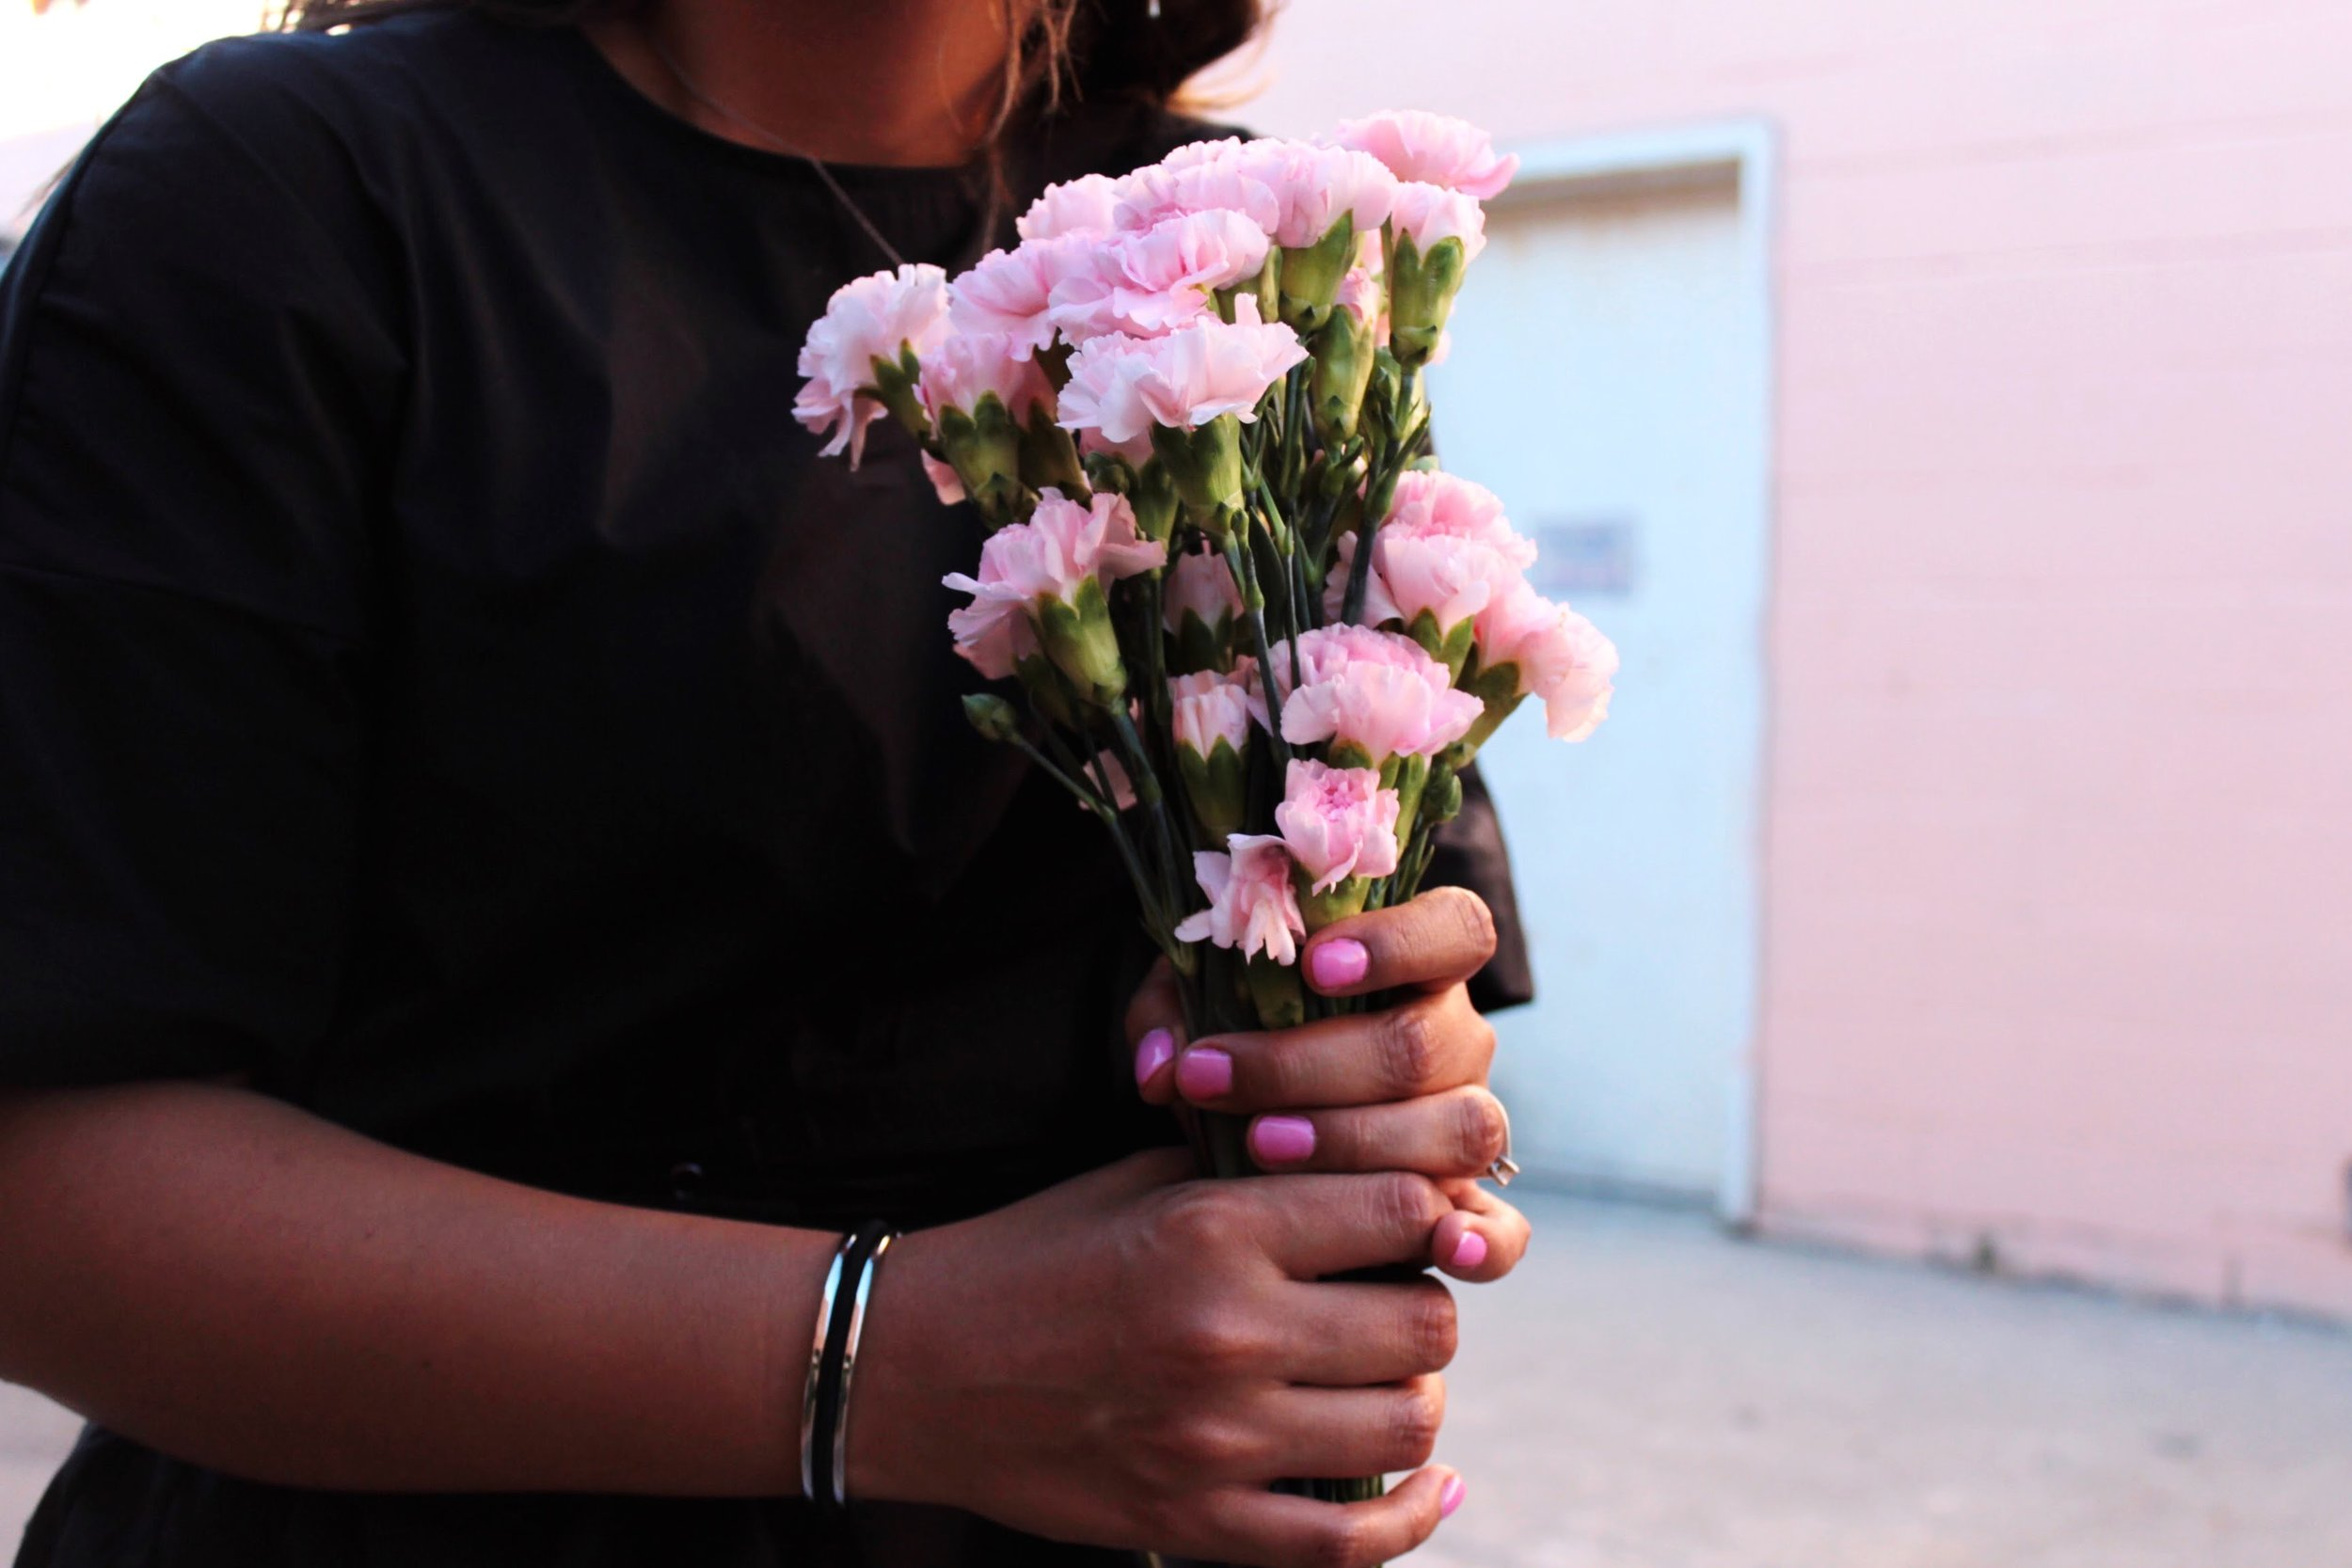 Pink Carnations and a Maria Shireen HairTie Bracelet.